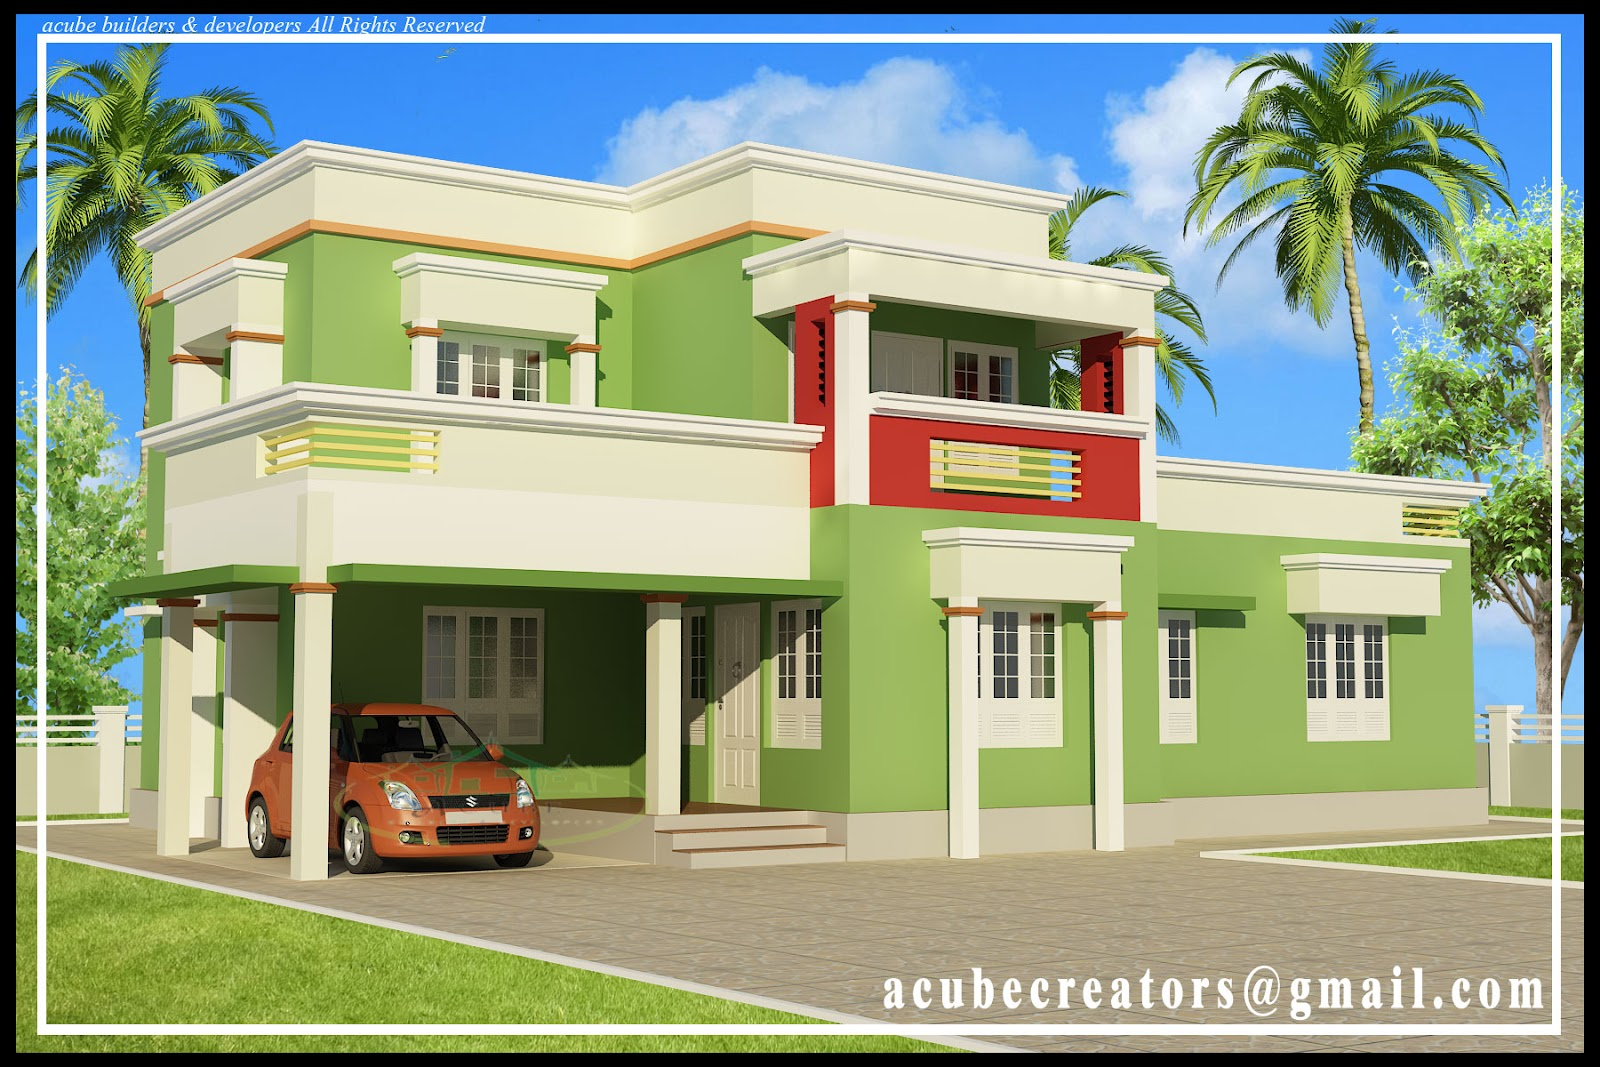 Simple cute modern home design 1879 sq ft plan 136 for Simple home elevation design